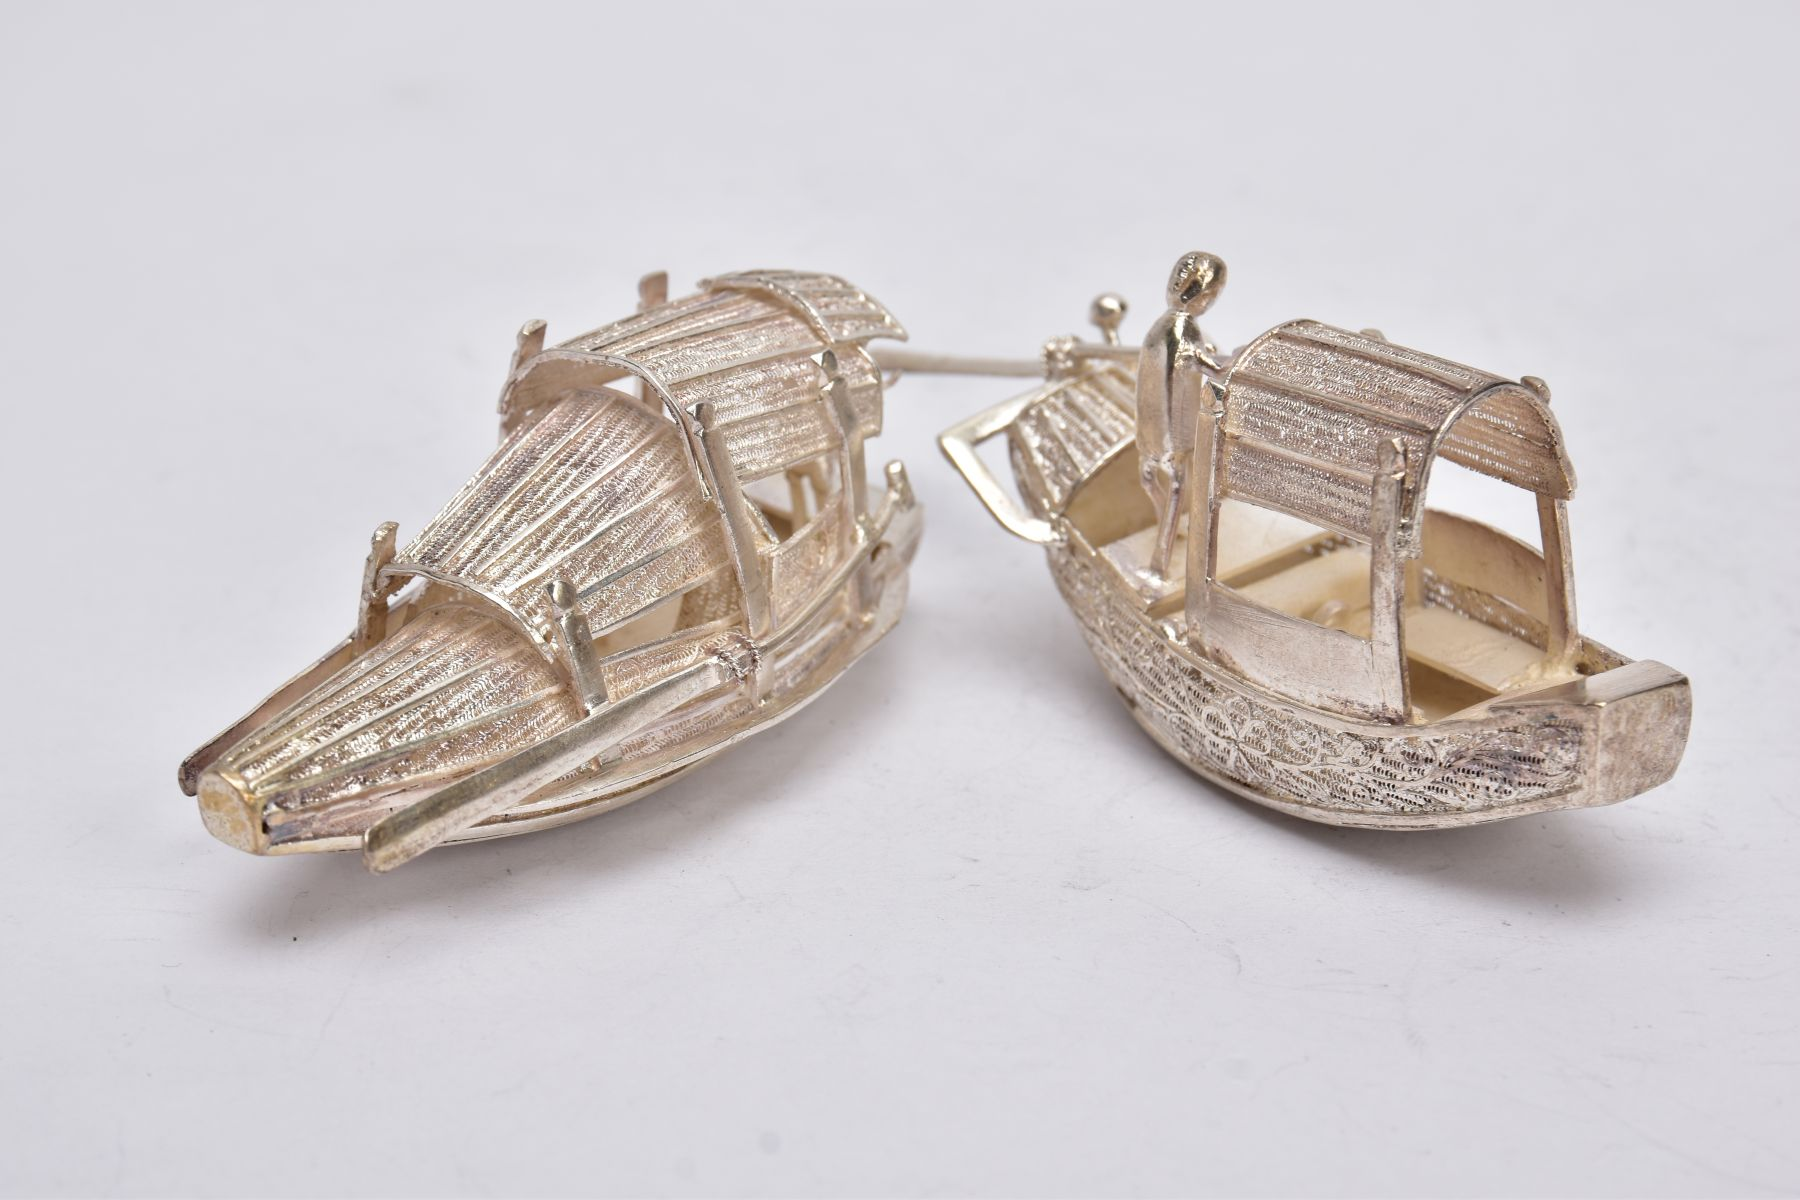 TWO MODERN ORIENTAL, WHITE METAL FILIGREE BOAT ORNAMENTS, one with a standing figure with paddle, - Image 4 of 8